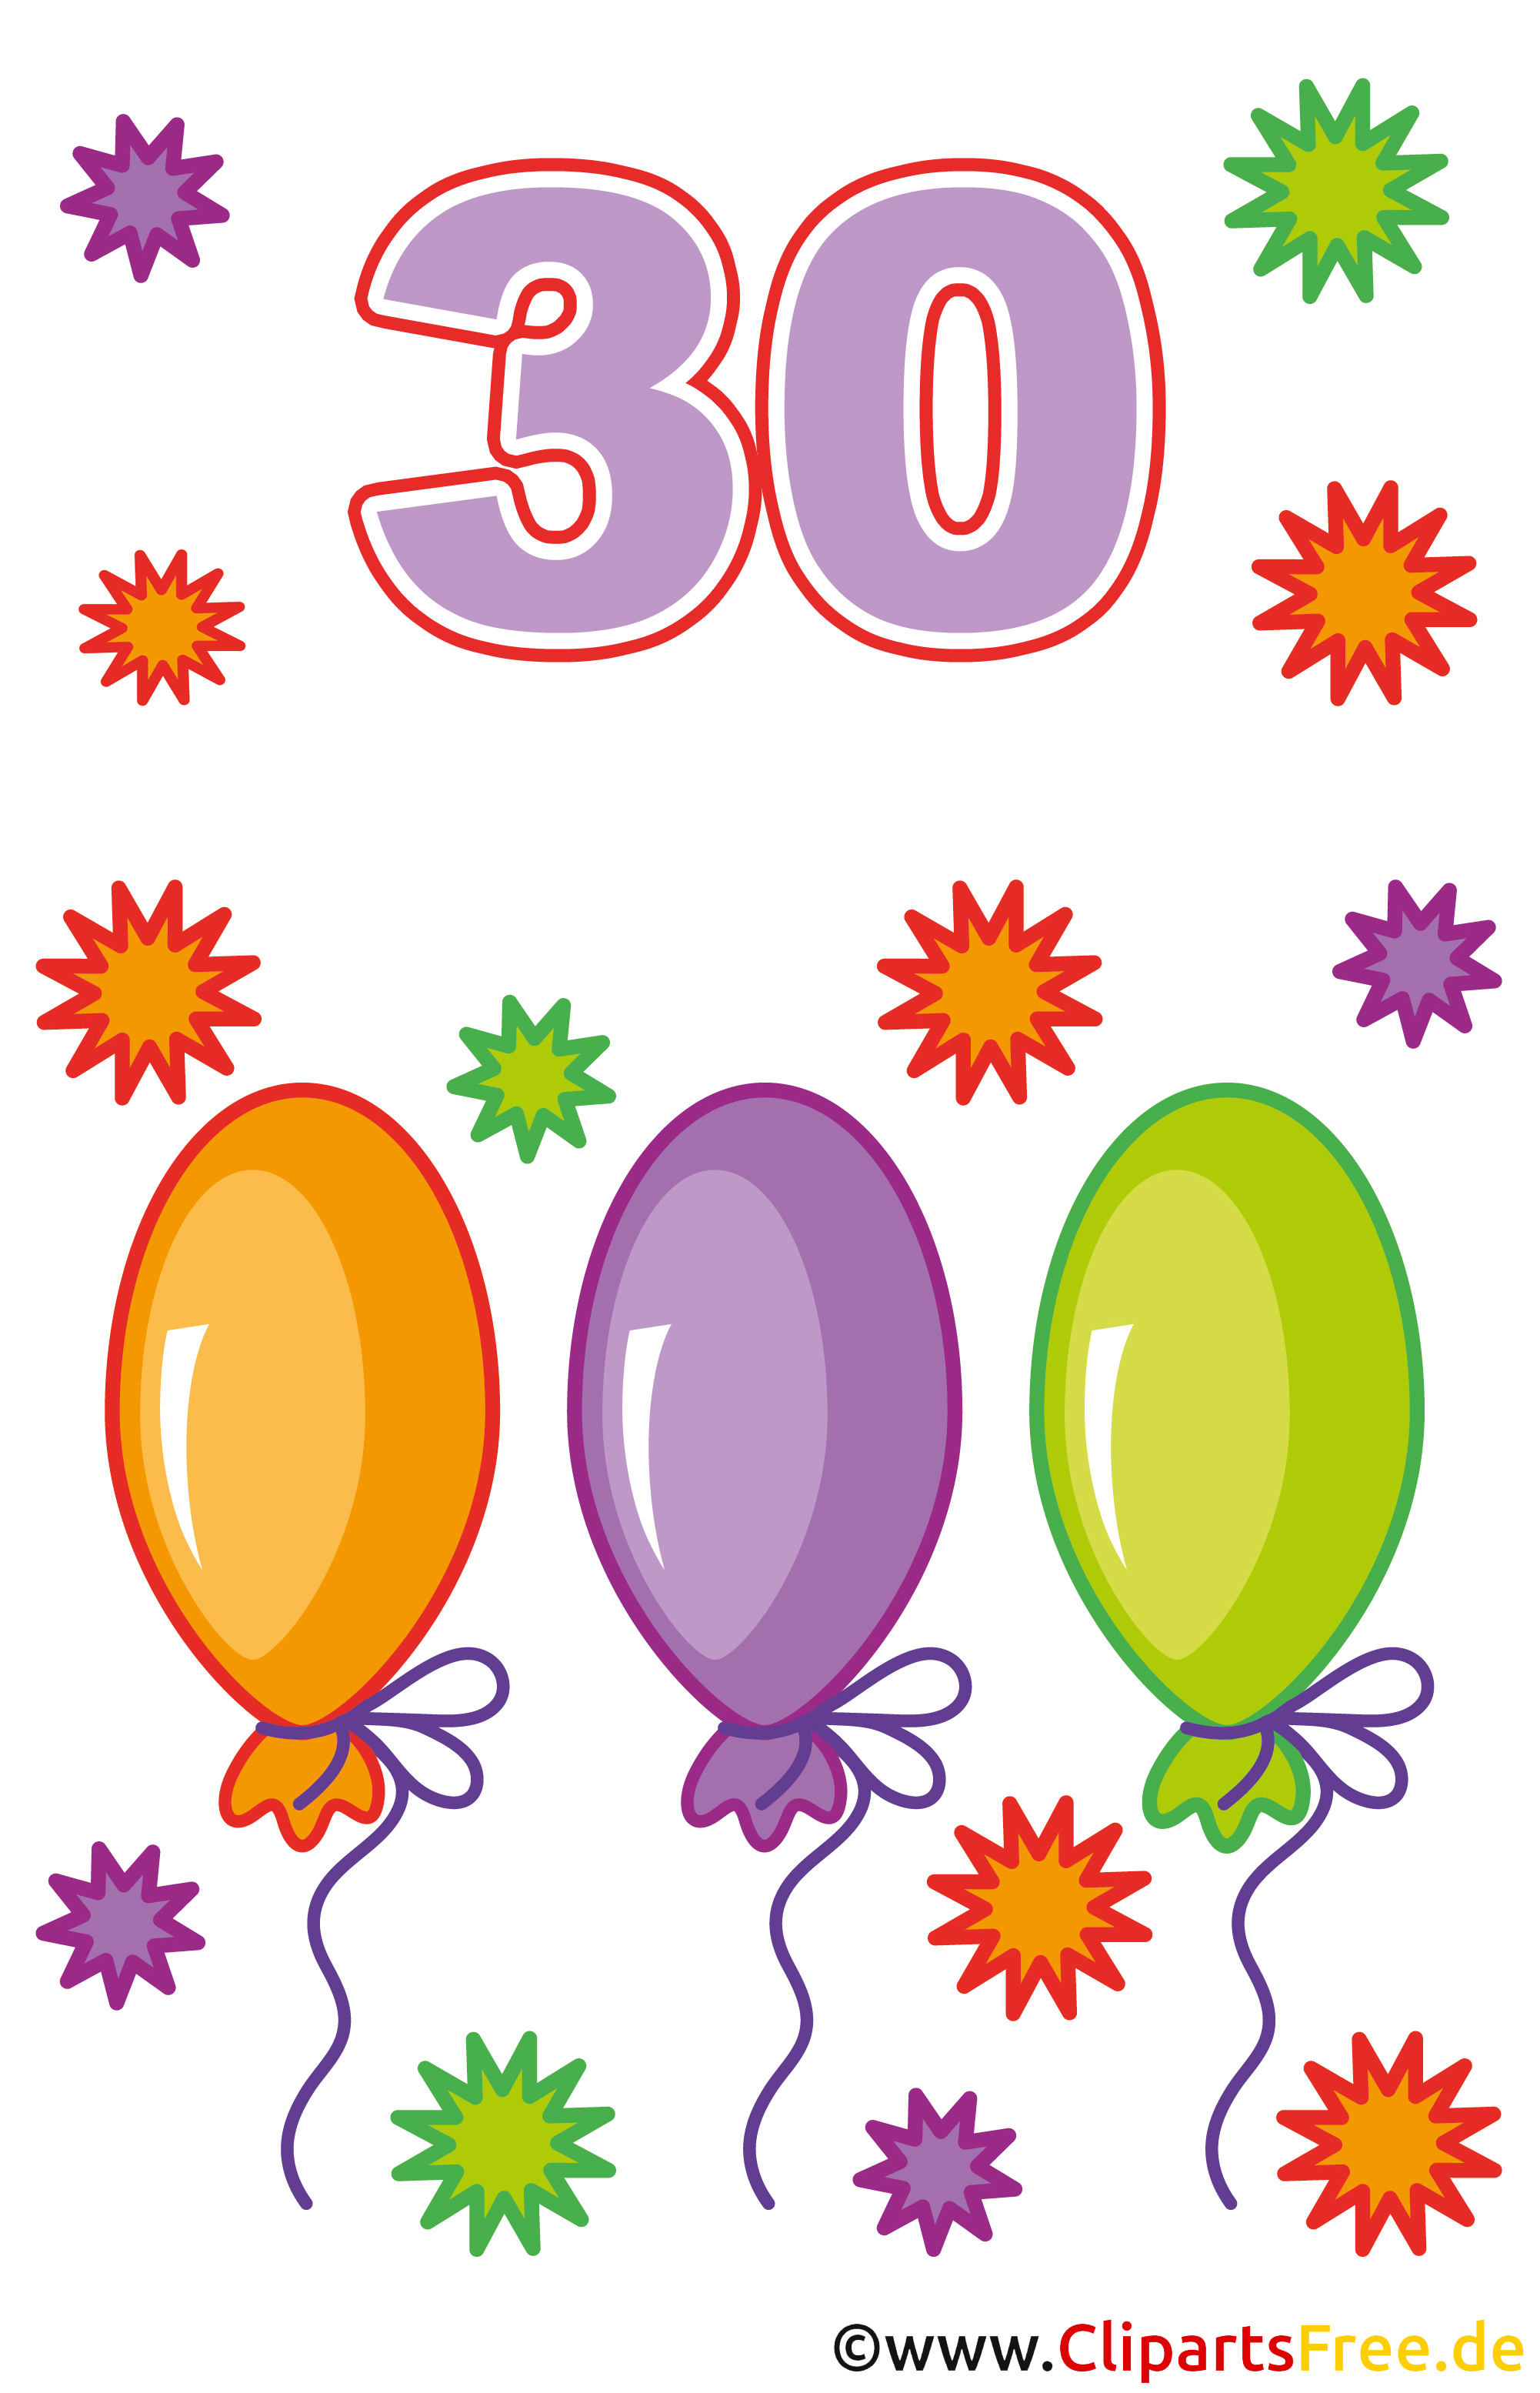 clipart geburtstag - photo #23